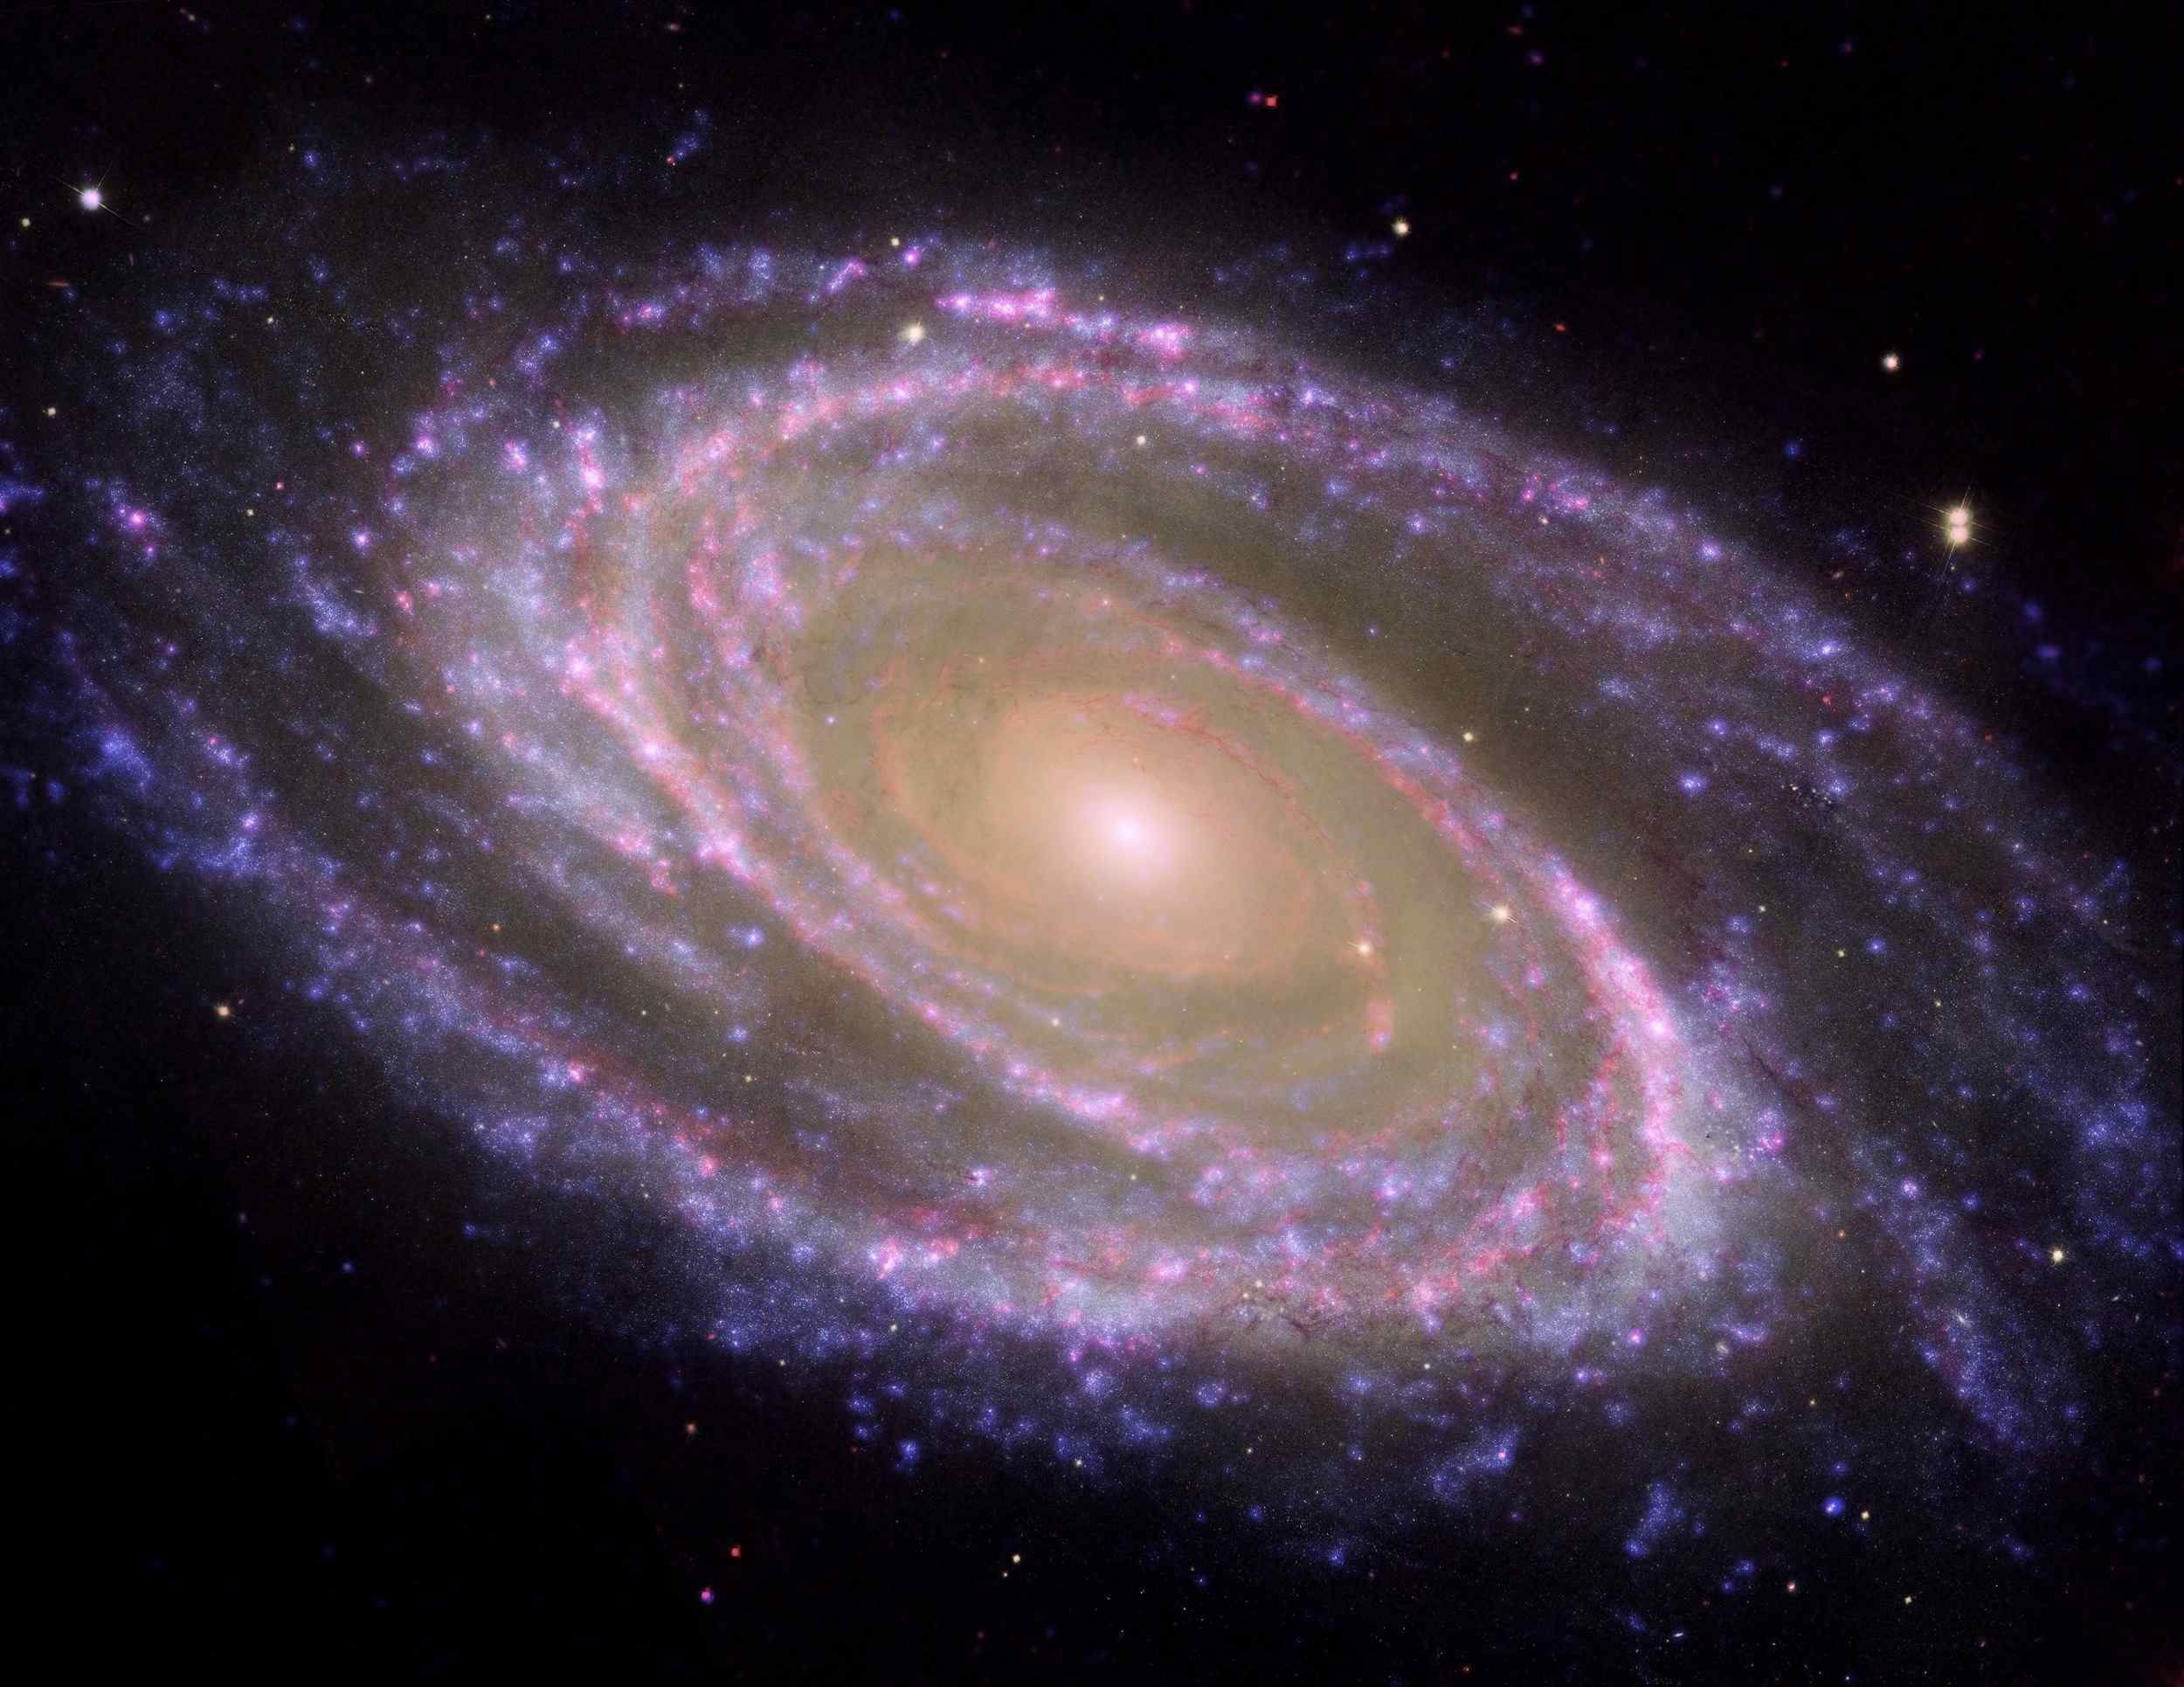 The perfectly picturesque spiral galaxy known as Messier 81, or M81, looks sharp in this new composite from NASA's Spitzer and Hubble space telescopes and NASA's Galaxy Evolution Explorer.